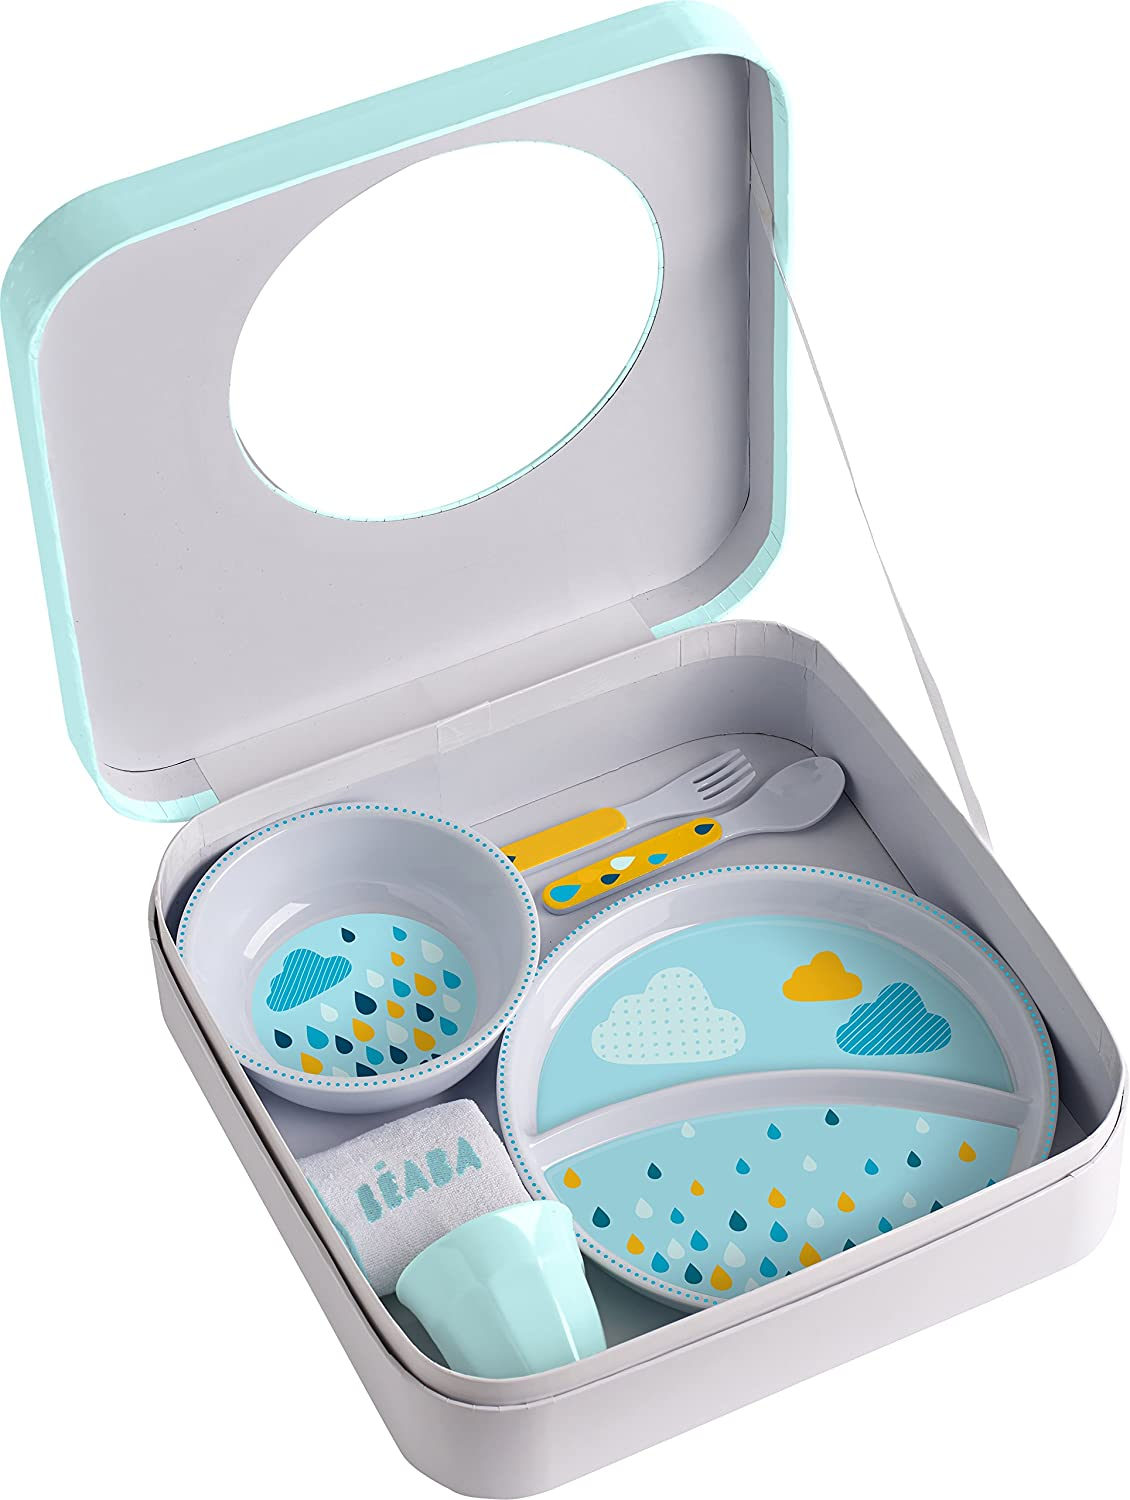 BEABA Gift Meal Set (Rainbow) 913407